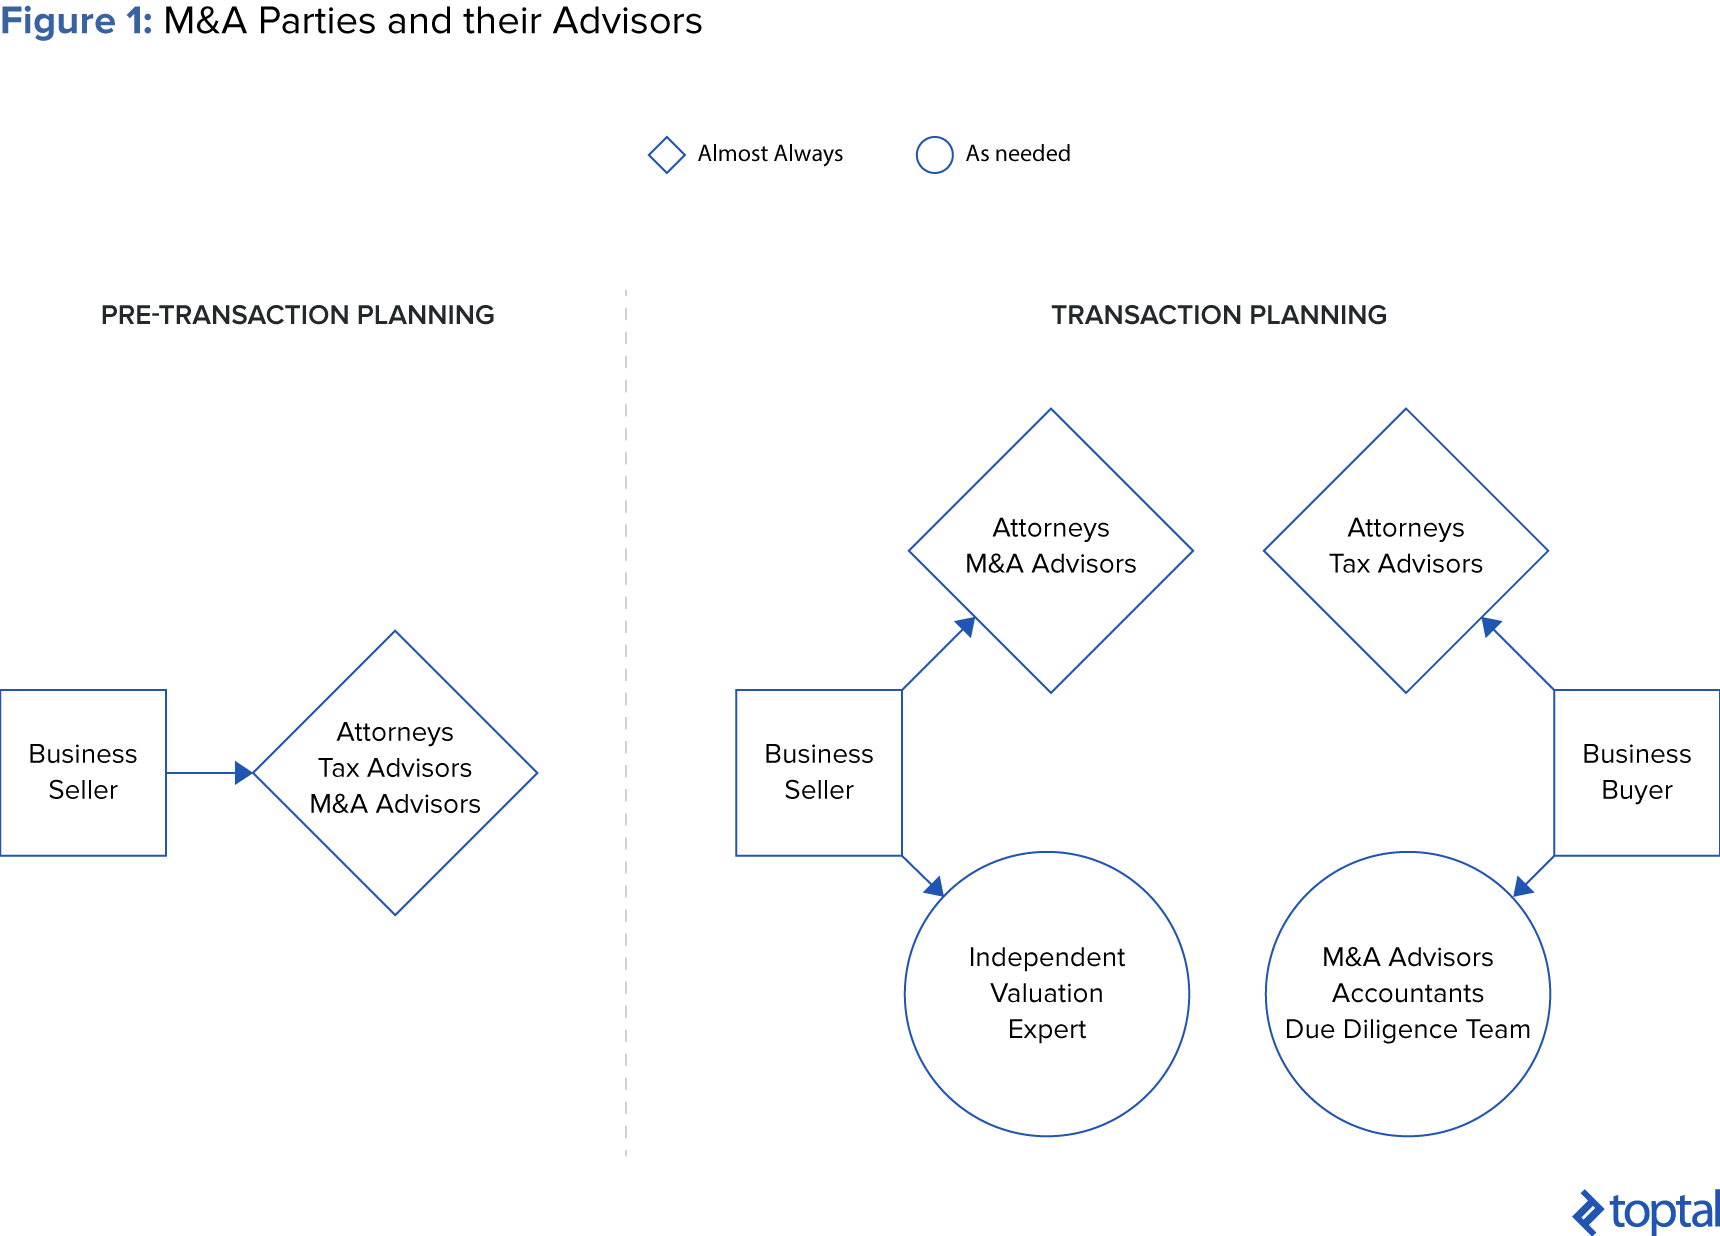 Figure 1: M&A Parties and their Advisors